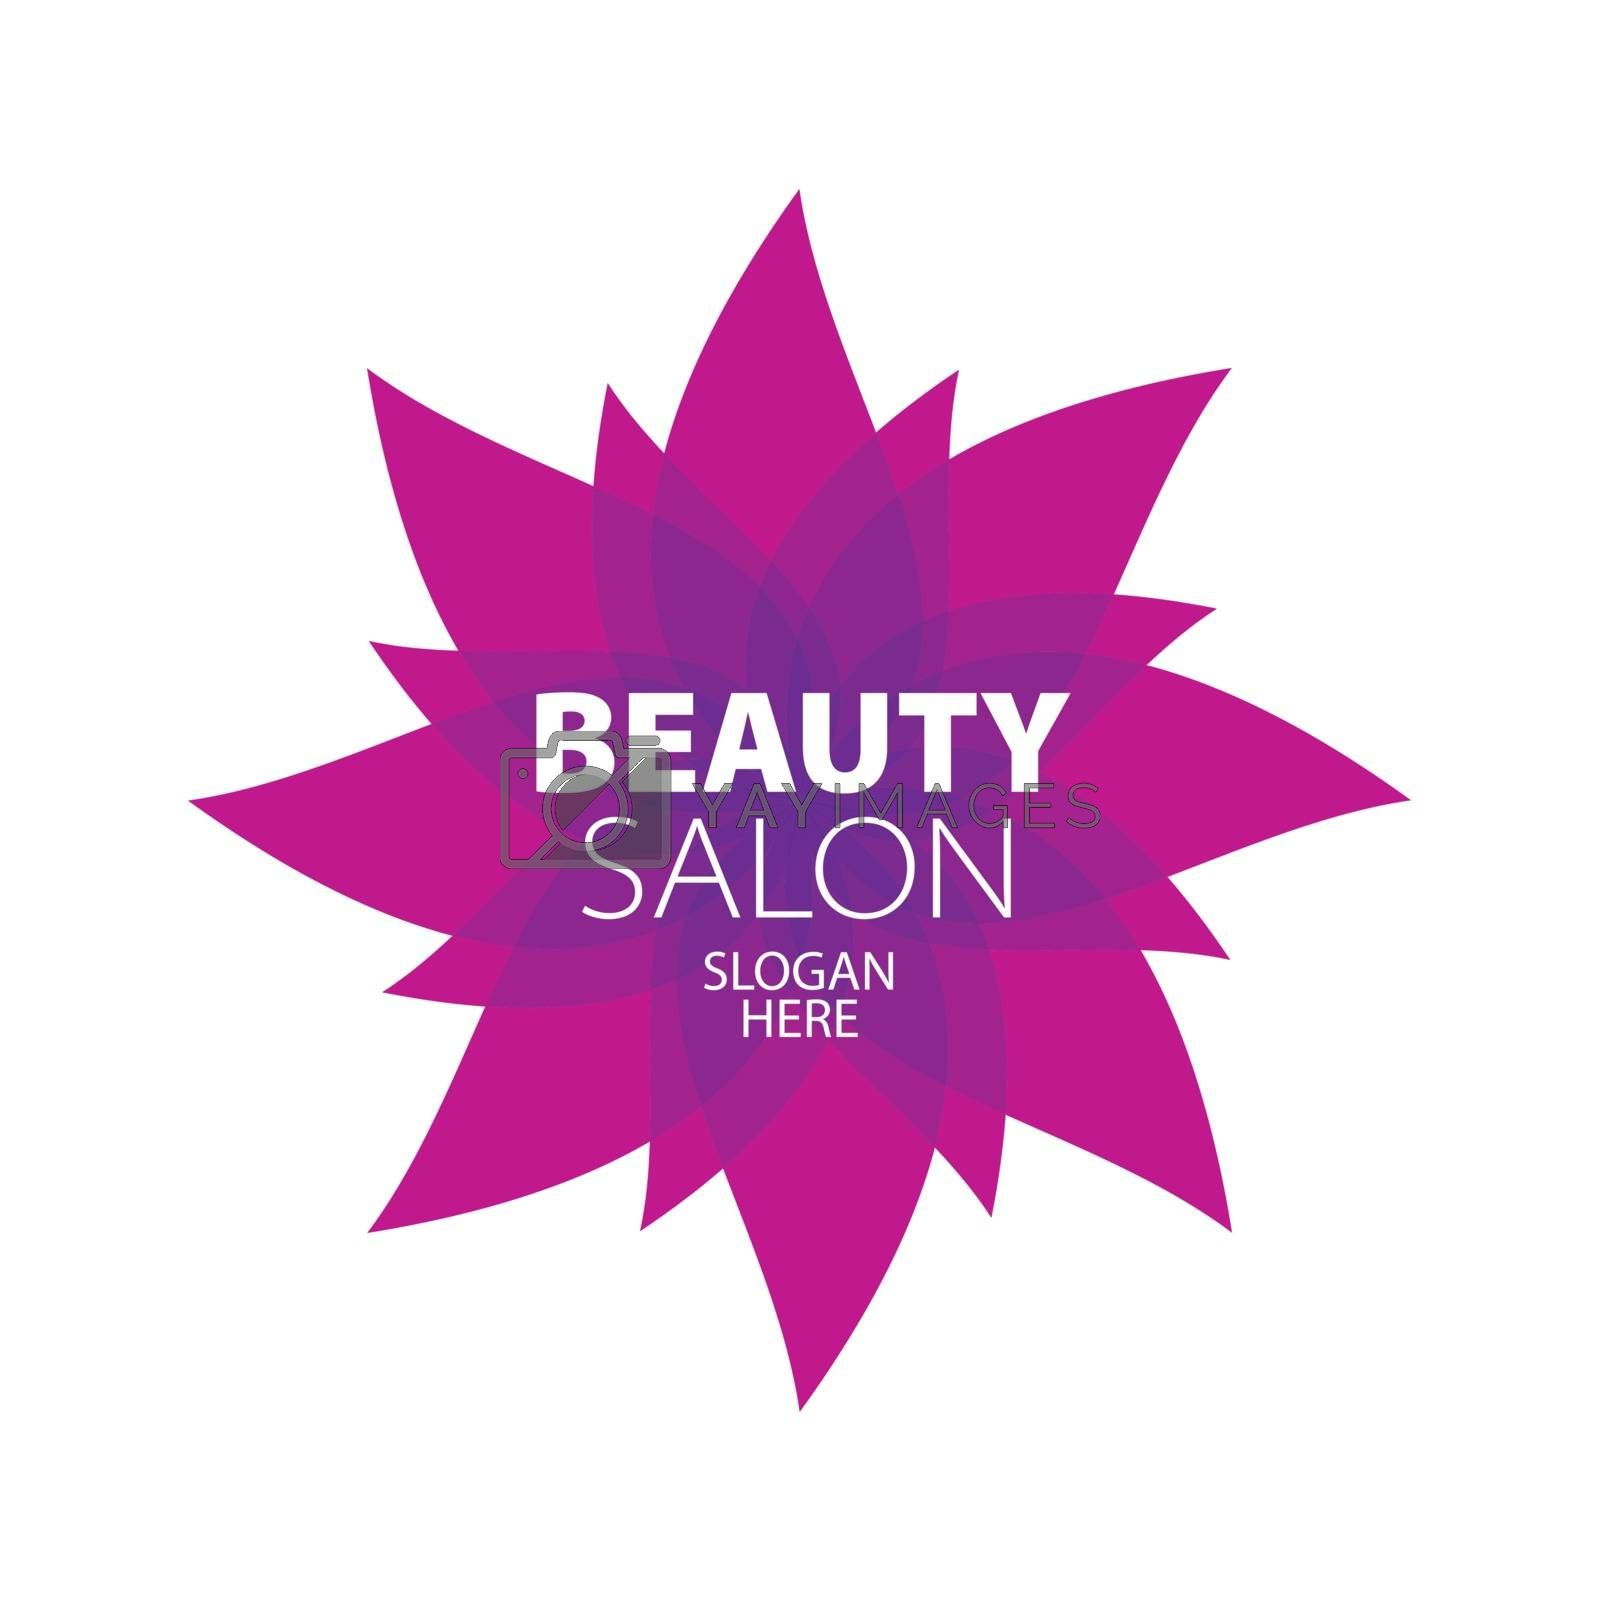 Abstract logo for beauty in the form of a red star